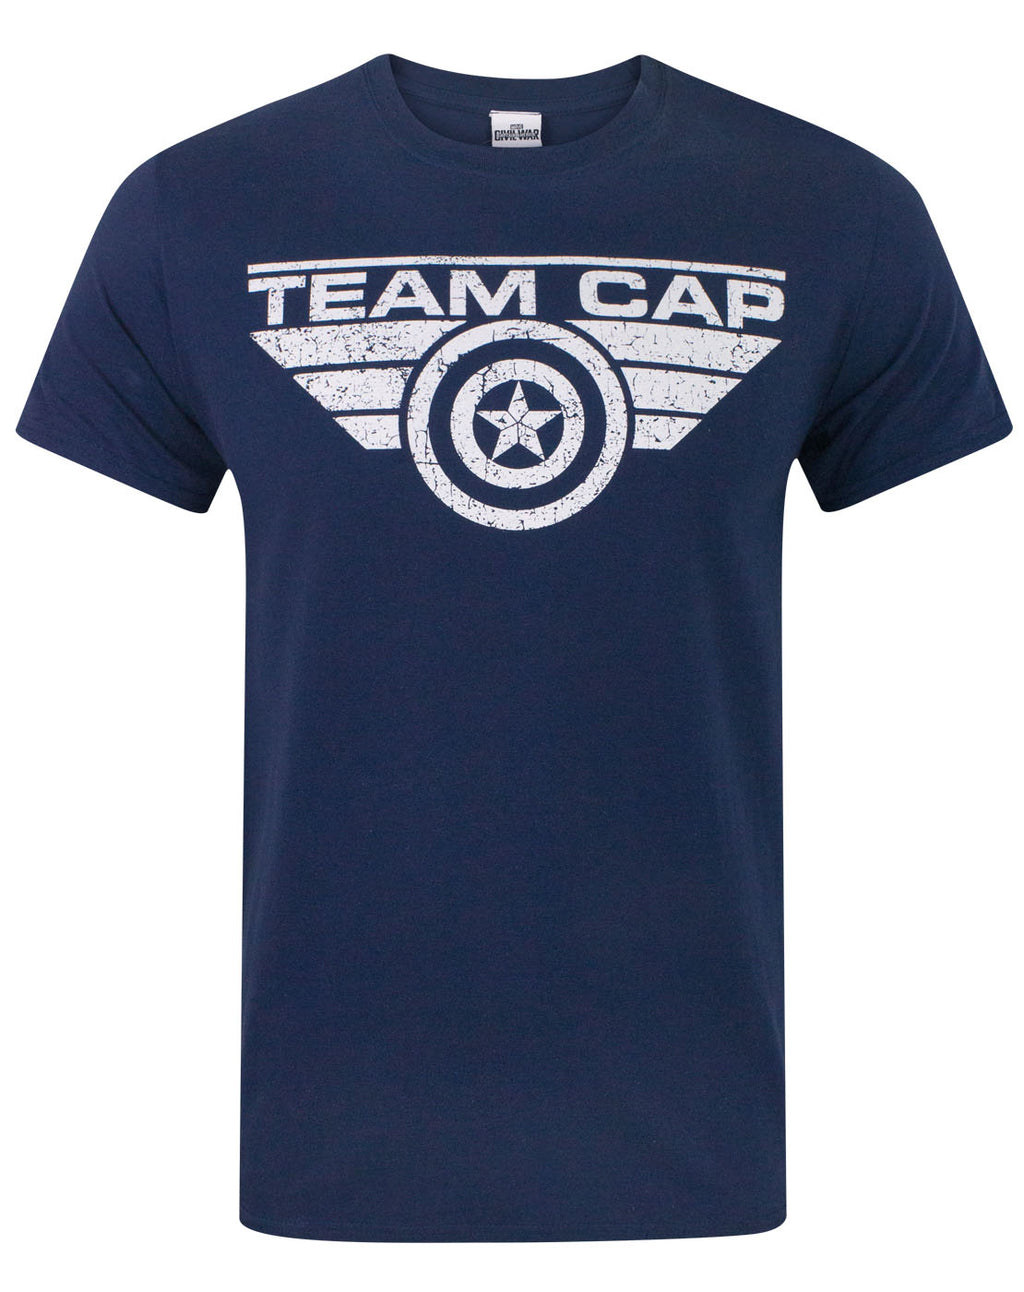 Captain America Civil War Team Cap Distressed Men's T-Shirt